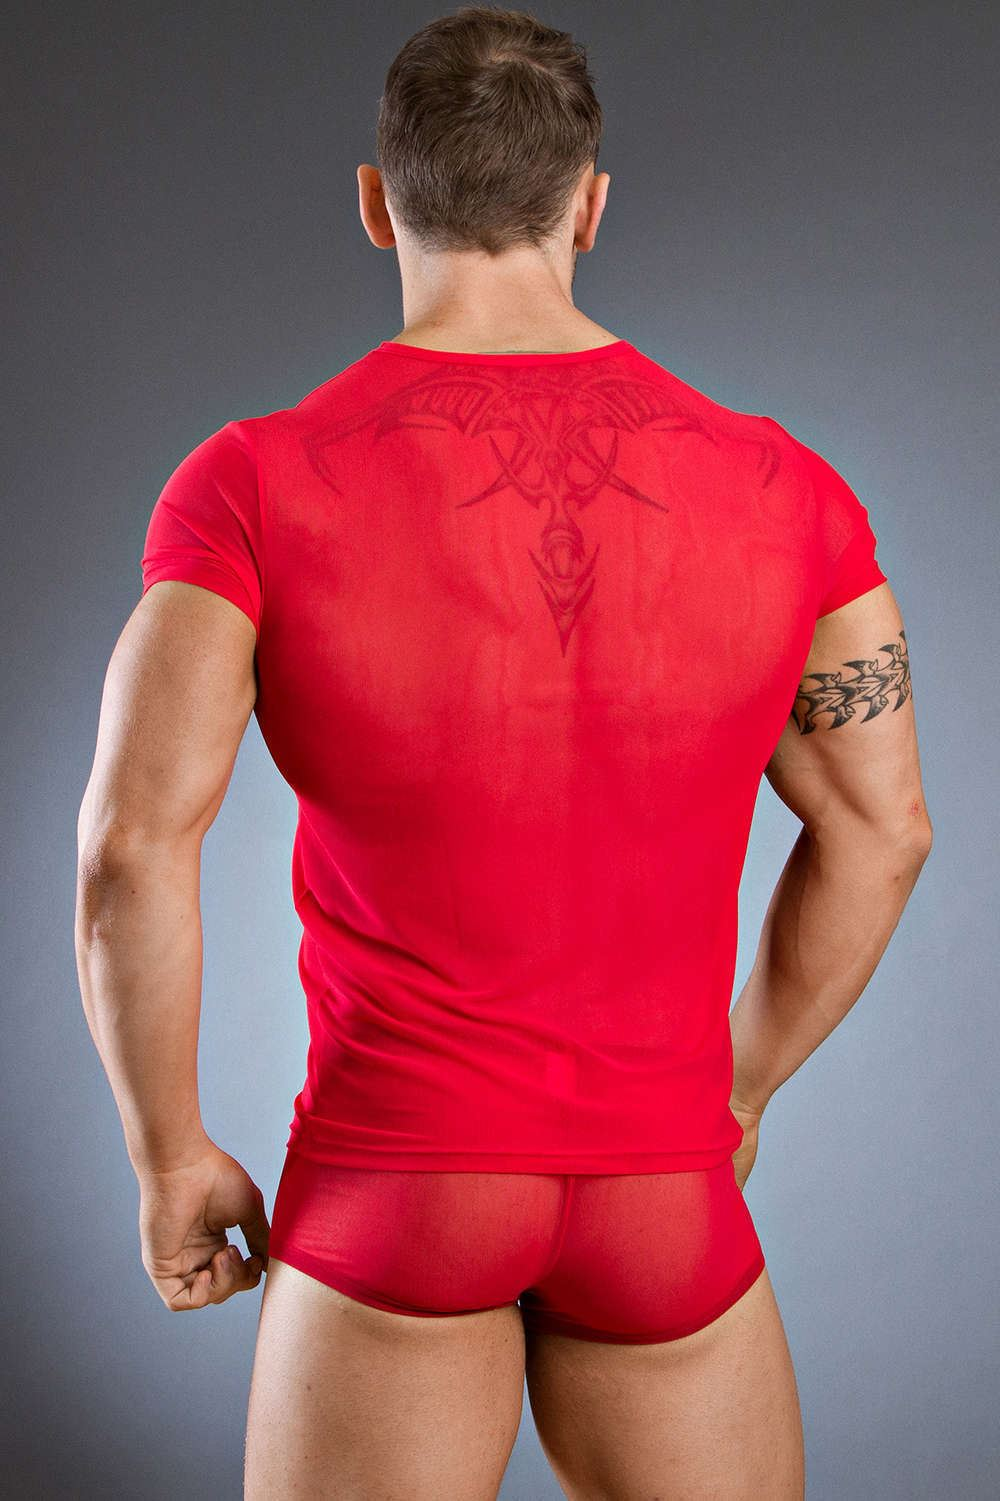 Mens body art eros v shirt underwear designer fashion top Uk mens designer clothing